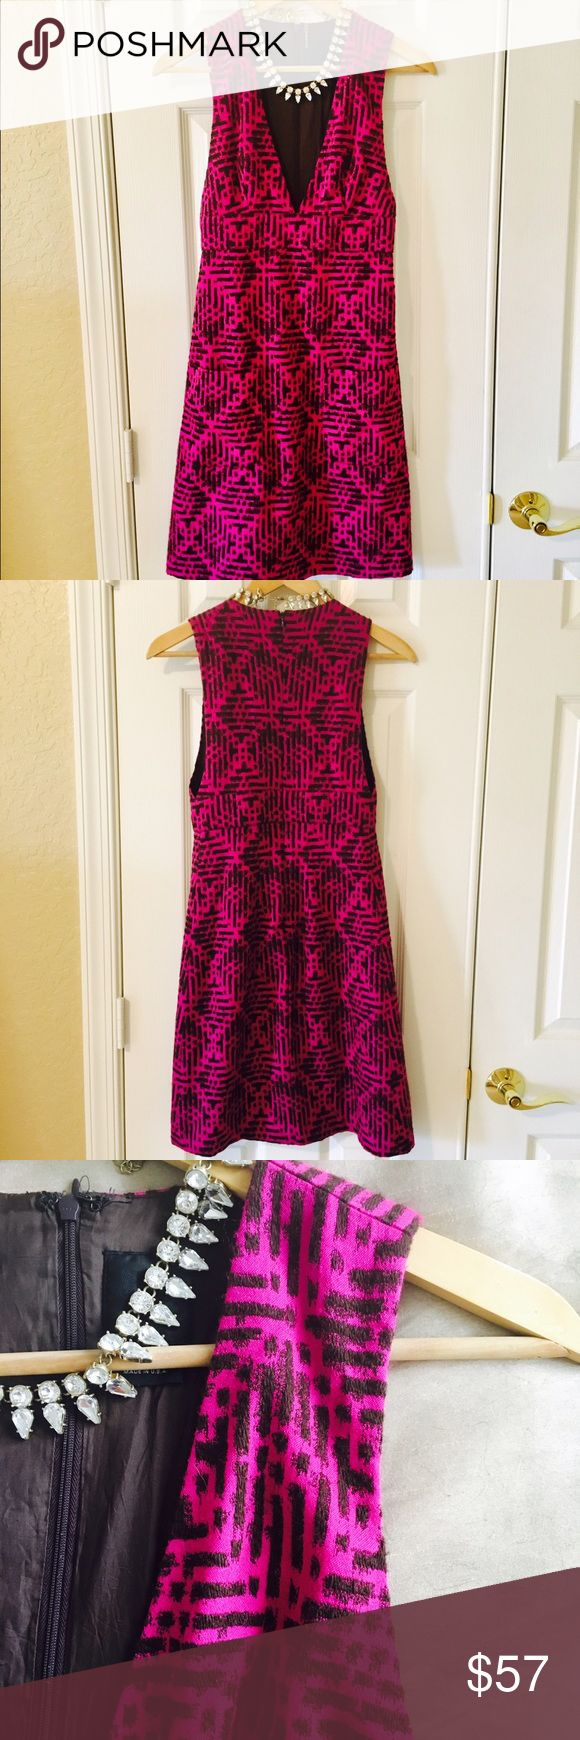 Anna Sui Pink Patterned Dress Gorgeous Anna Sui Pink Patterned Dress. This dress so beautiful! Love it, just too hot for Fl, 25%wool. Cute front pockets, So unique! Such a great look with Boots or heels, even flats! Just gorgeous. Excellent condition! Anthropologie Dresses